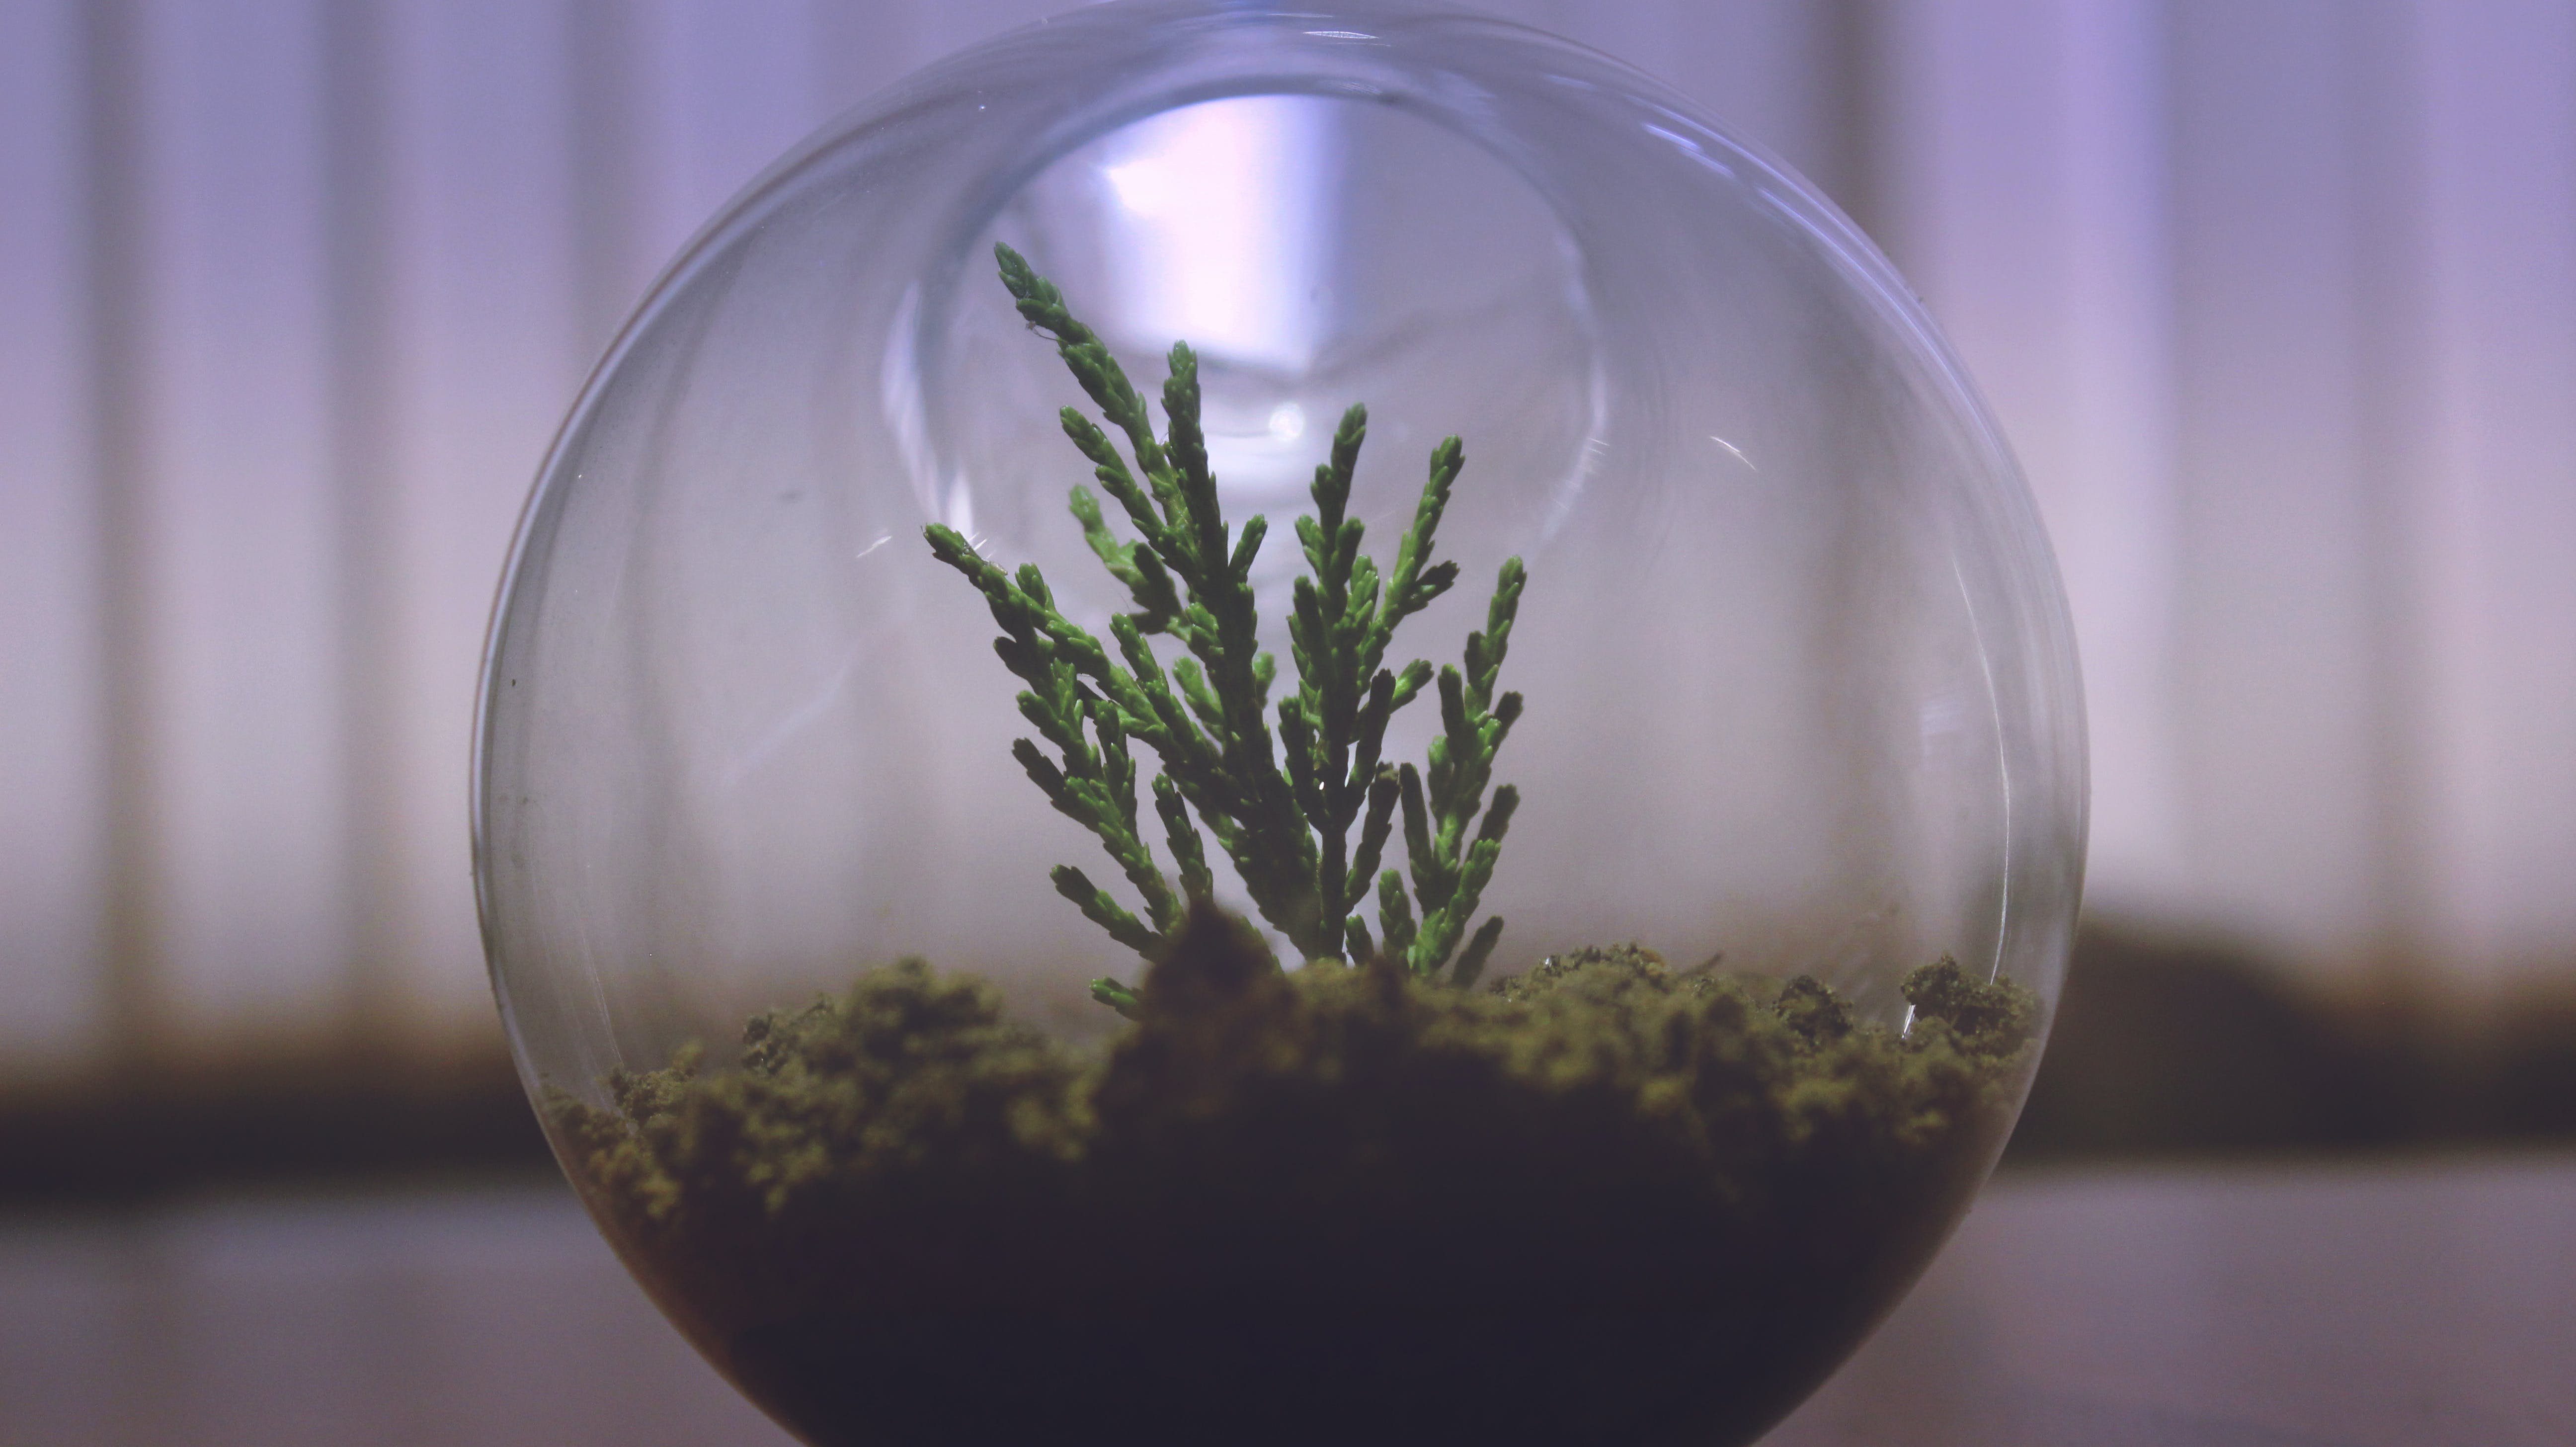 decoration, glass, plant